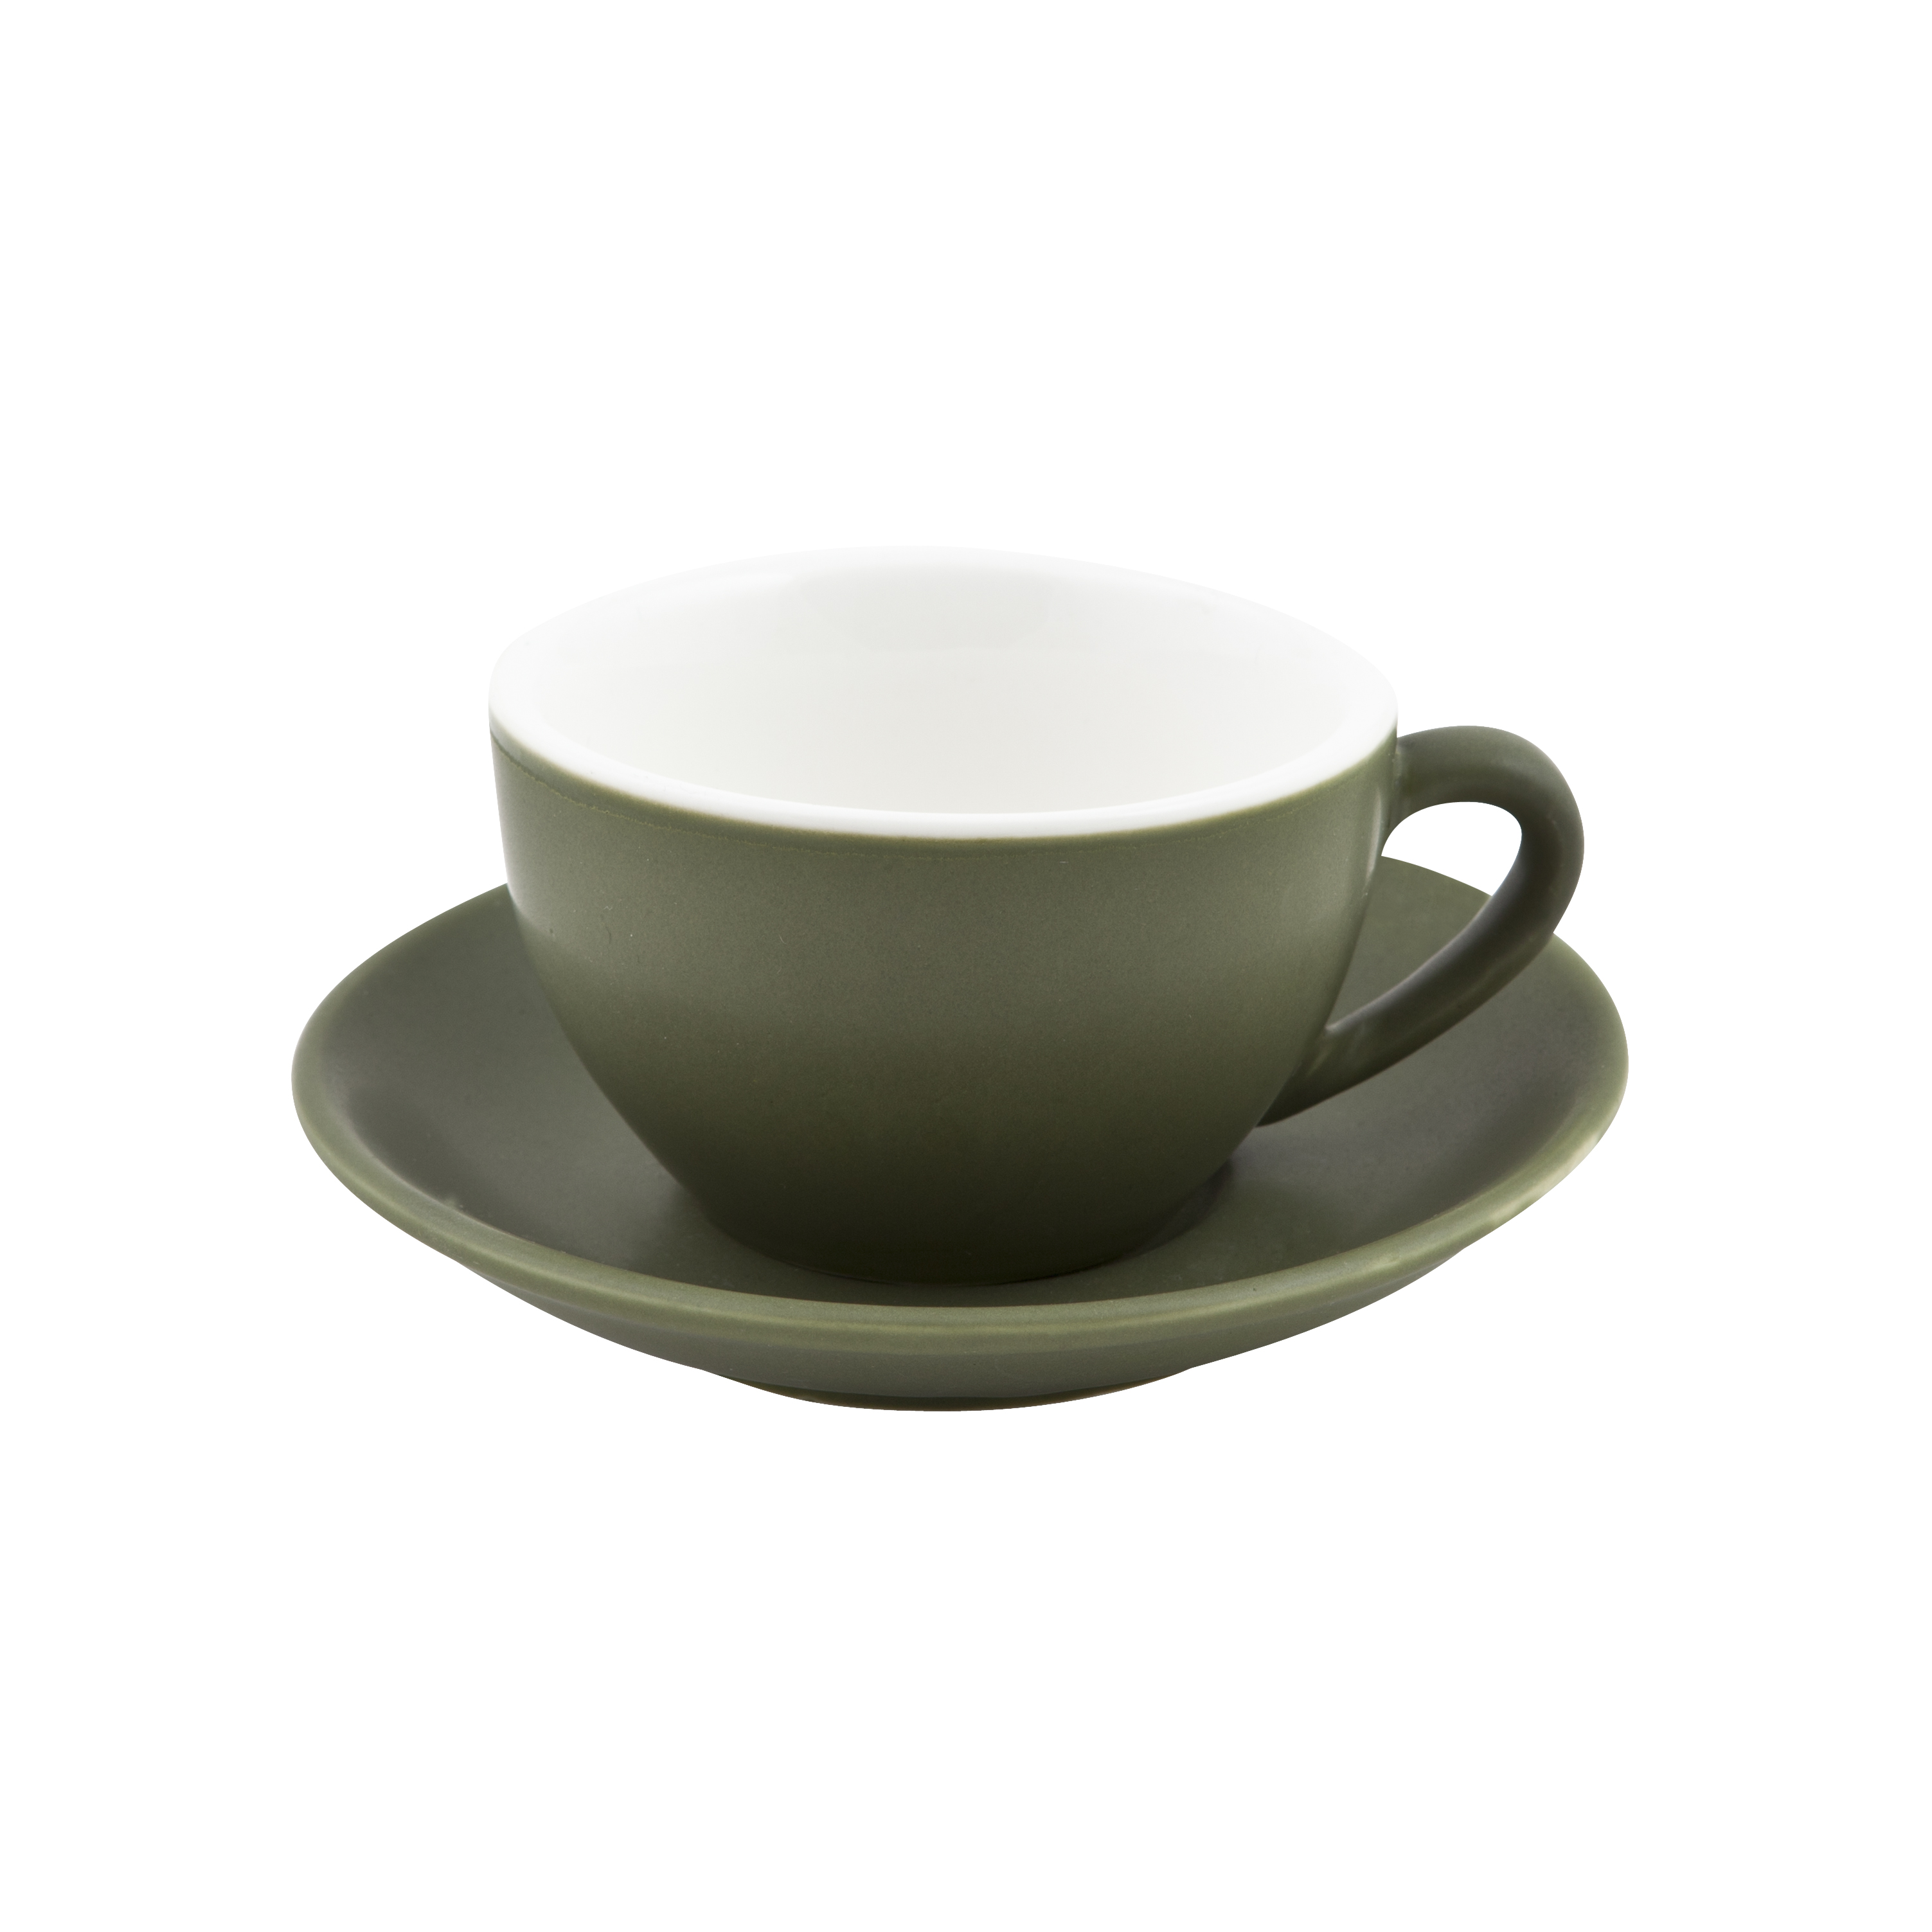 Intorno Coffee/Tea Cup & Saucer